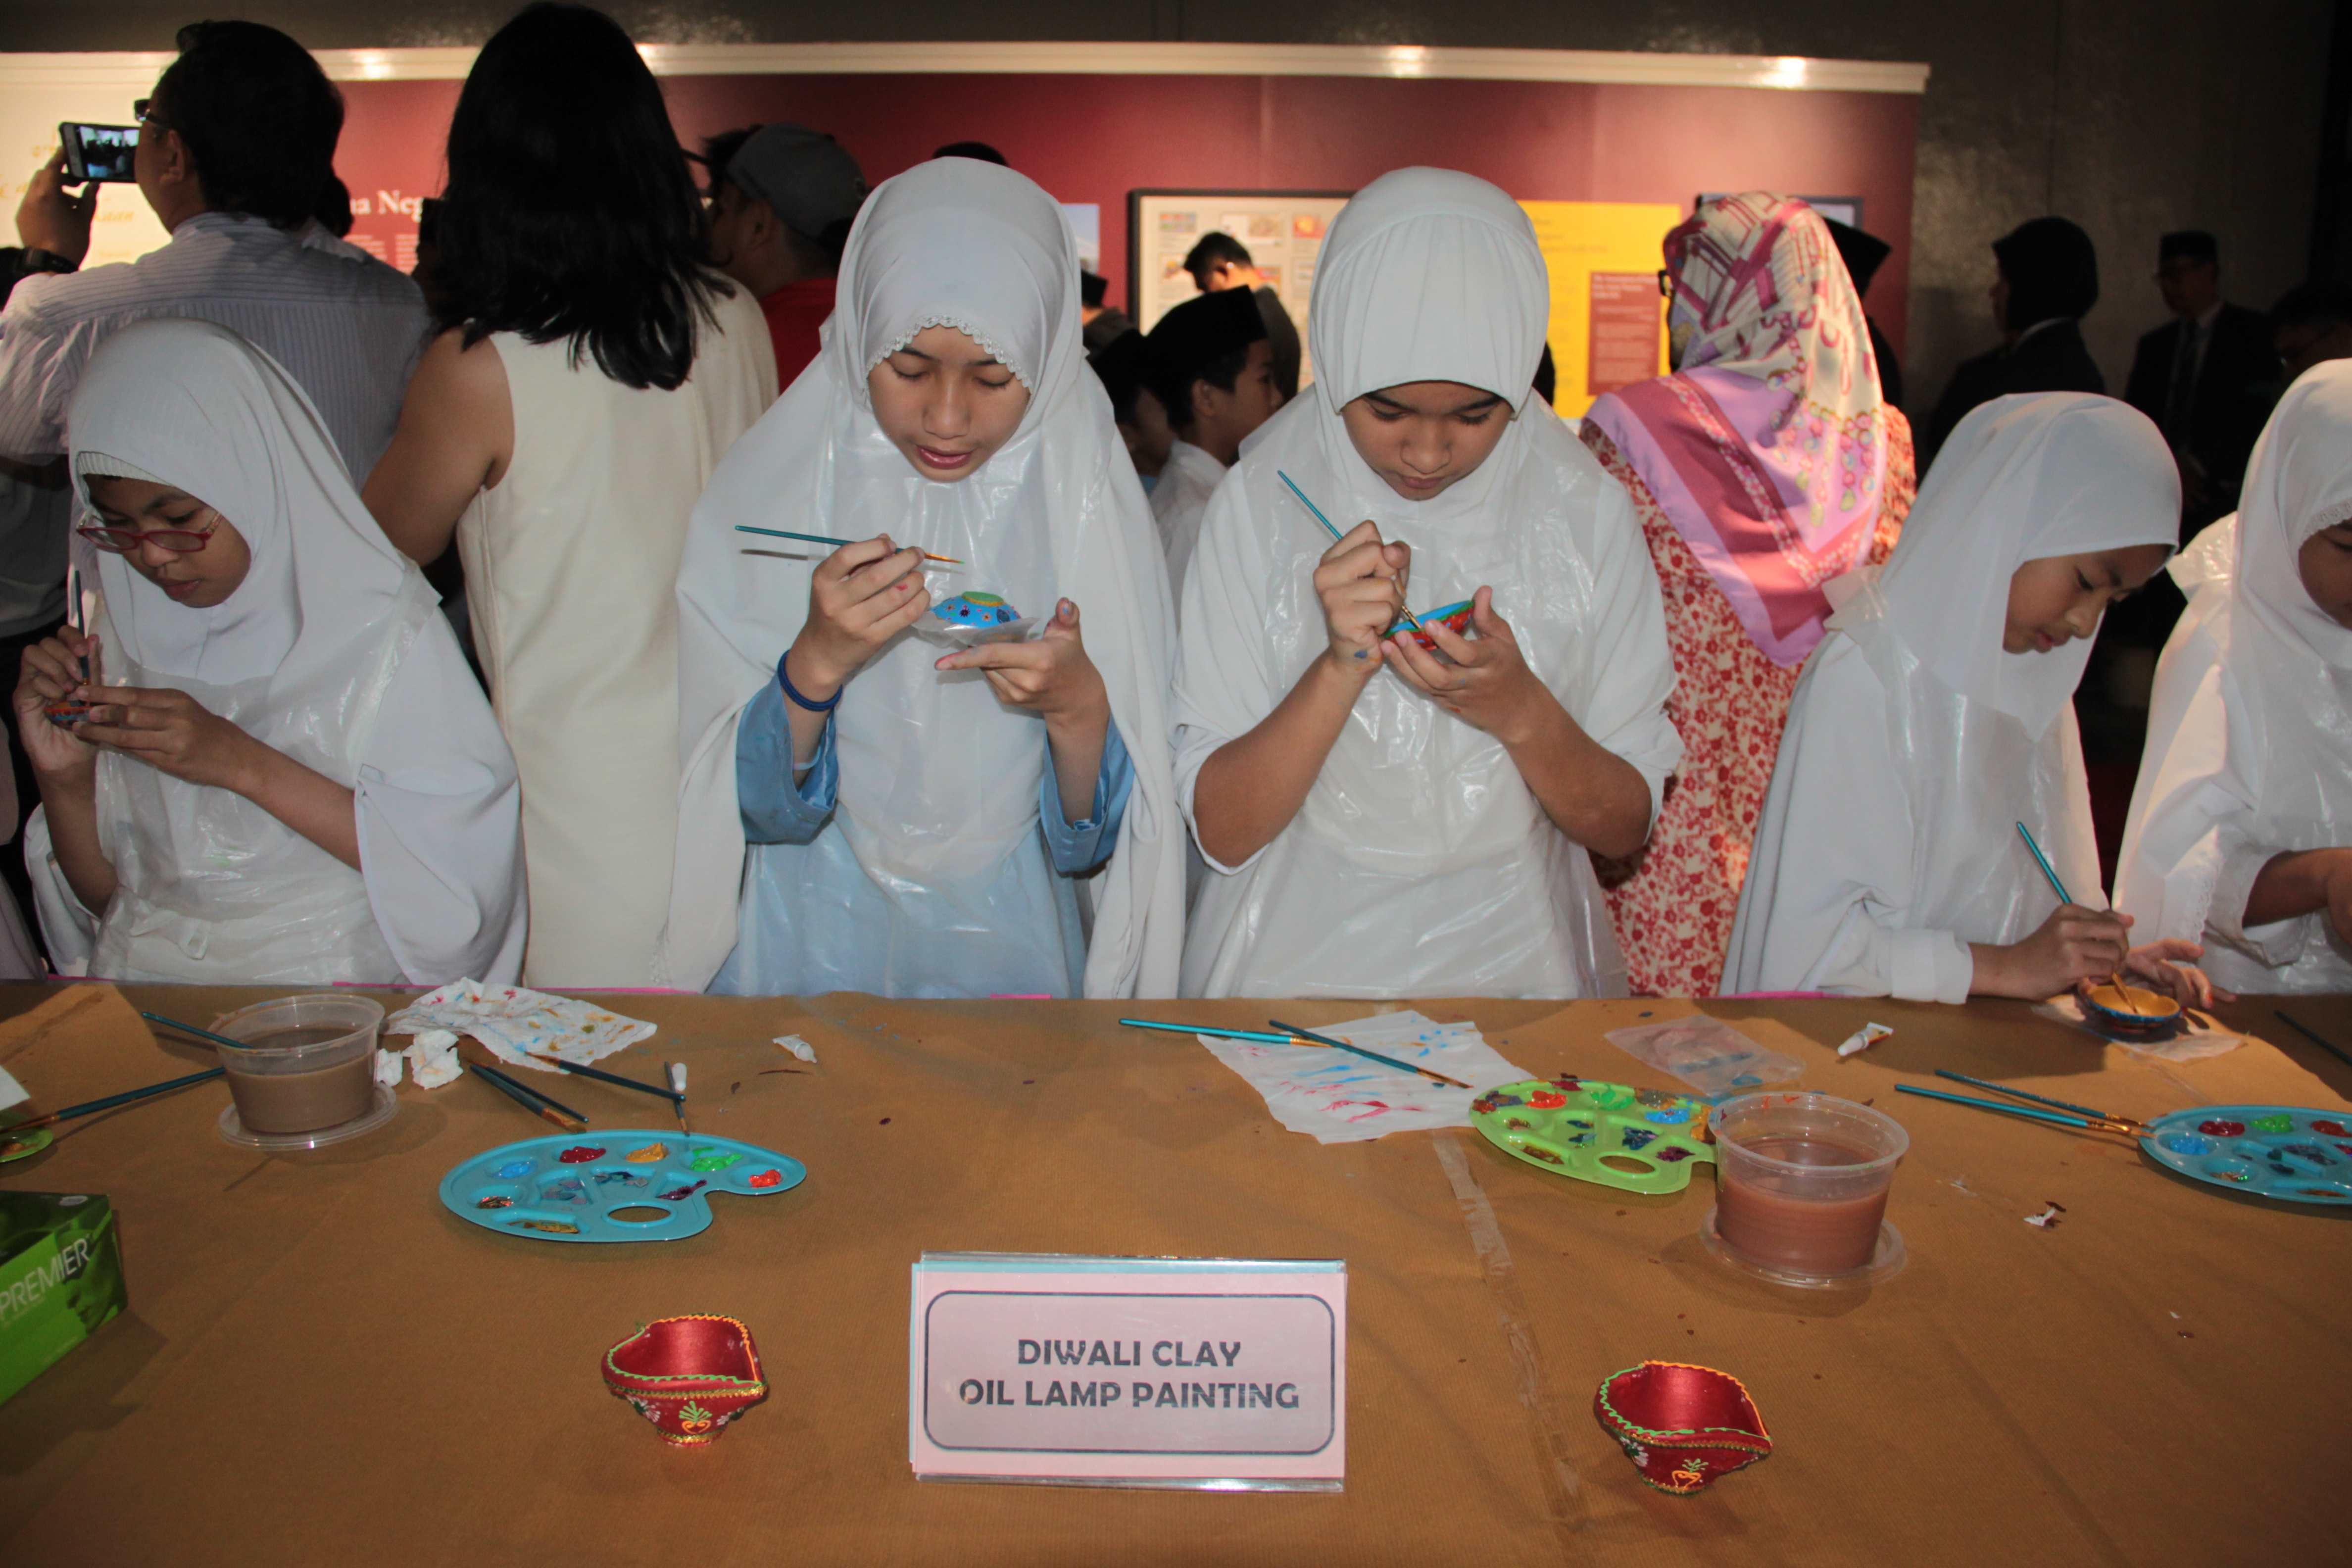 Students painting Diwali clay oil lamp as part of the activities at 'Abode of Peace & the Lion City: A Brunei-Singapore Exhibition' at Royal Wharf in the capital. Photo: Rasidah Hj Abu Bakar